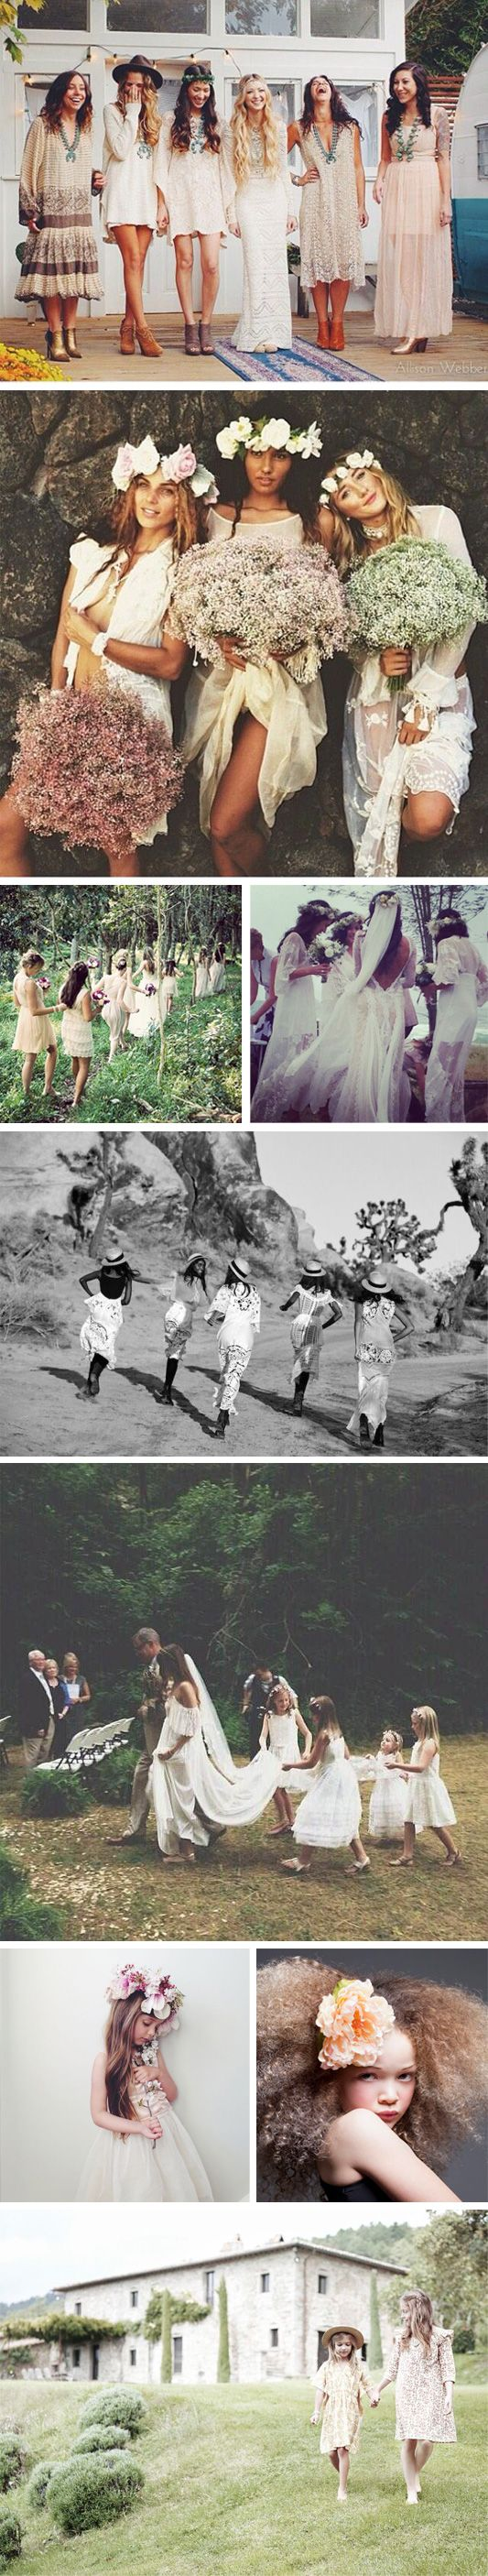 FESTIVAL BRIDES || Alternative Photoshoot At The Keeper And The Dell: The Inspiration